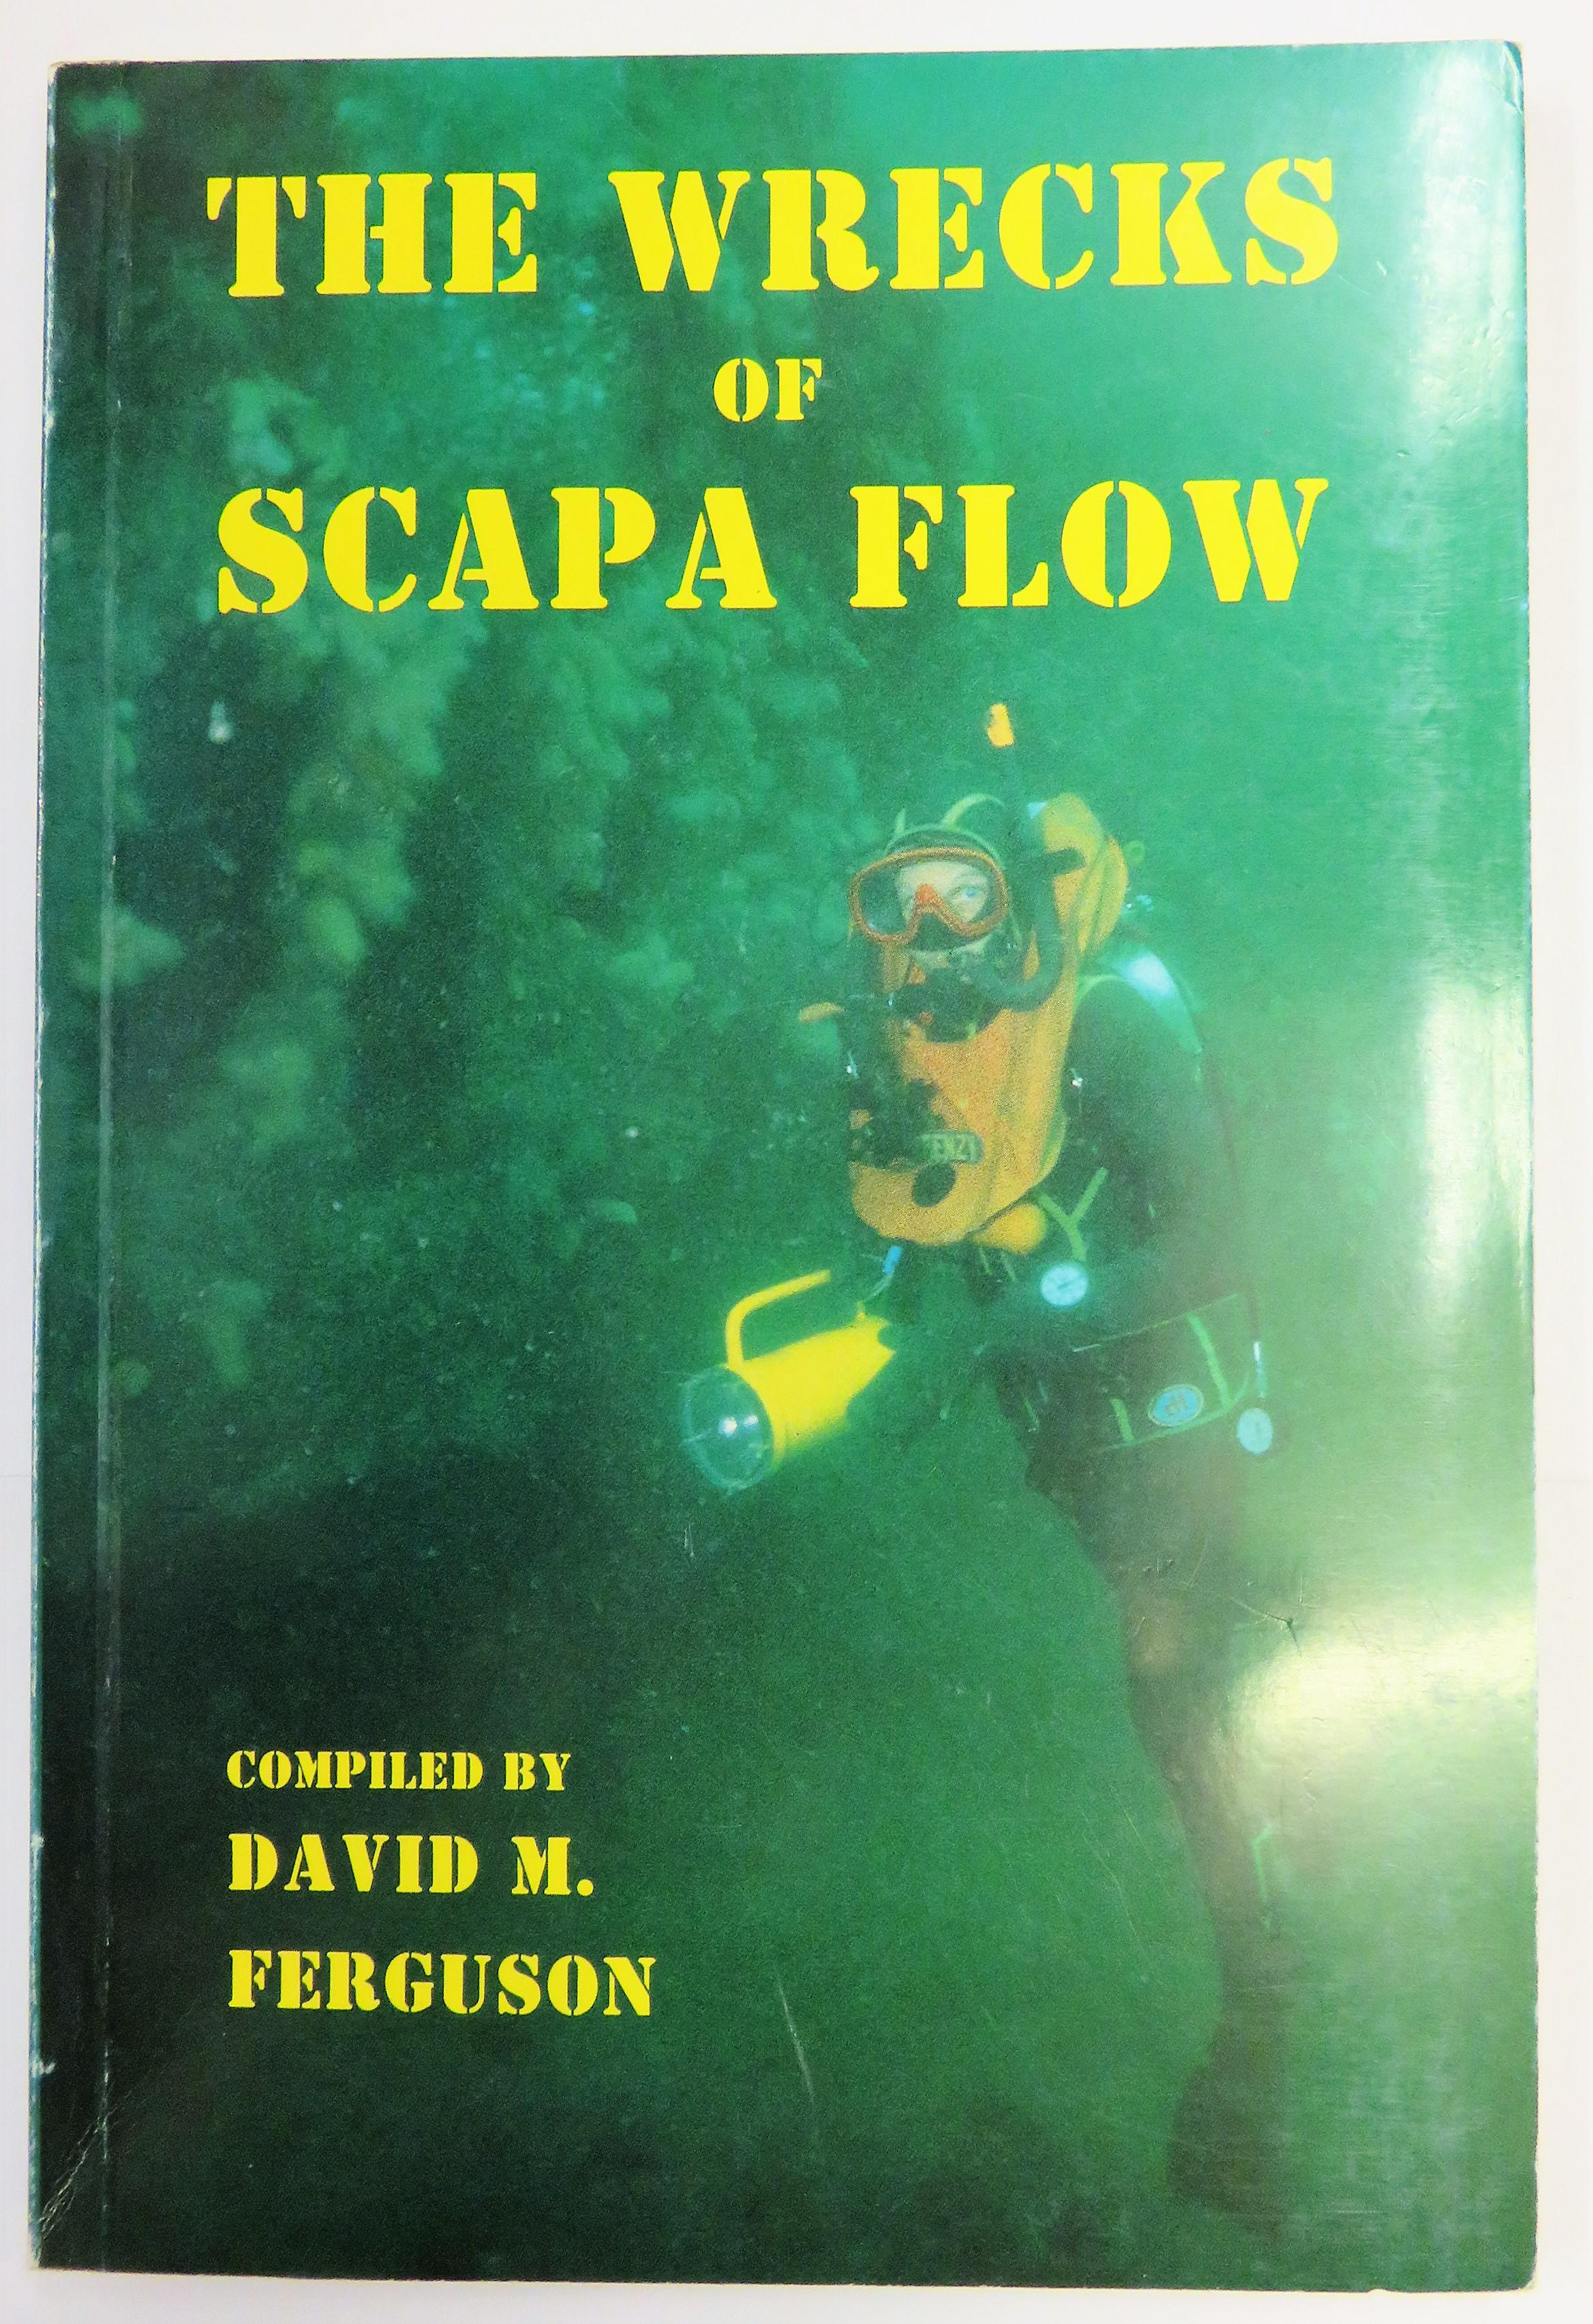 The Wrecks of Scapa Flow